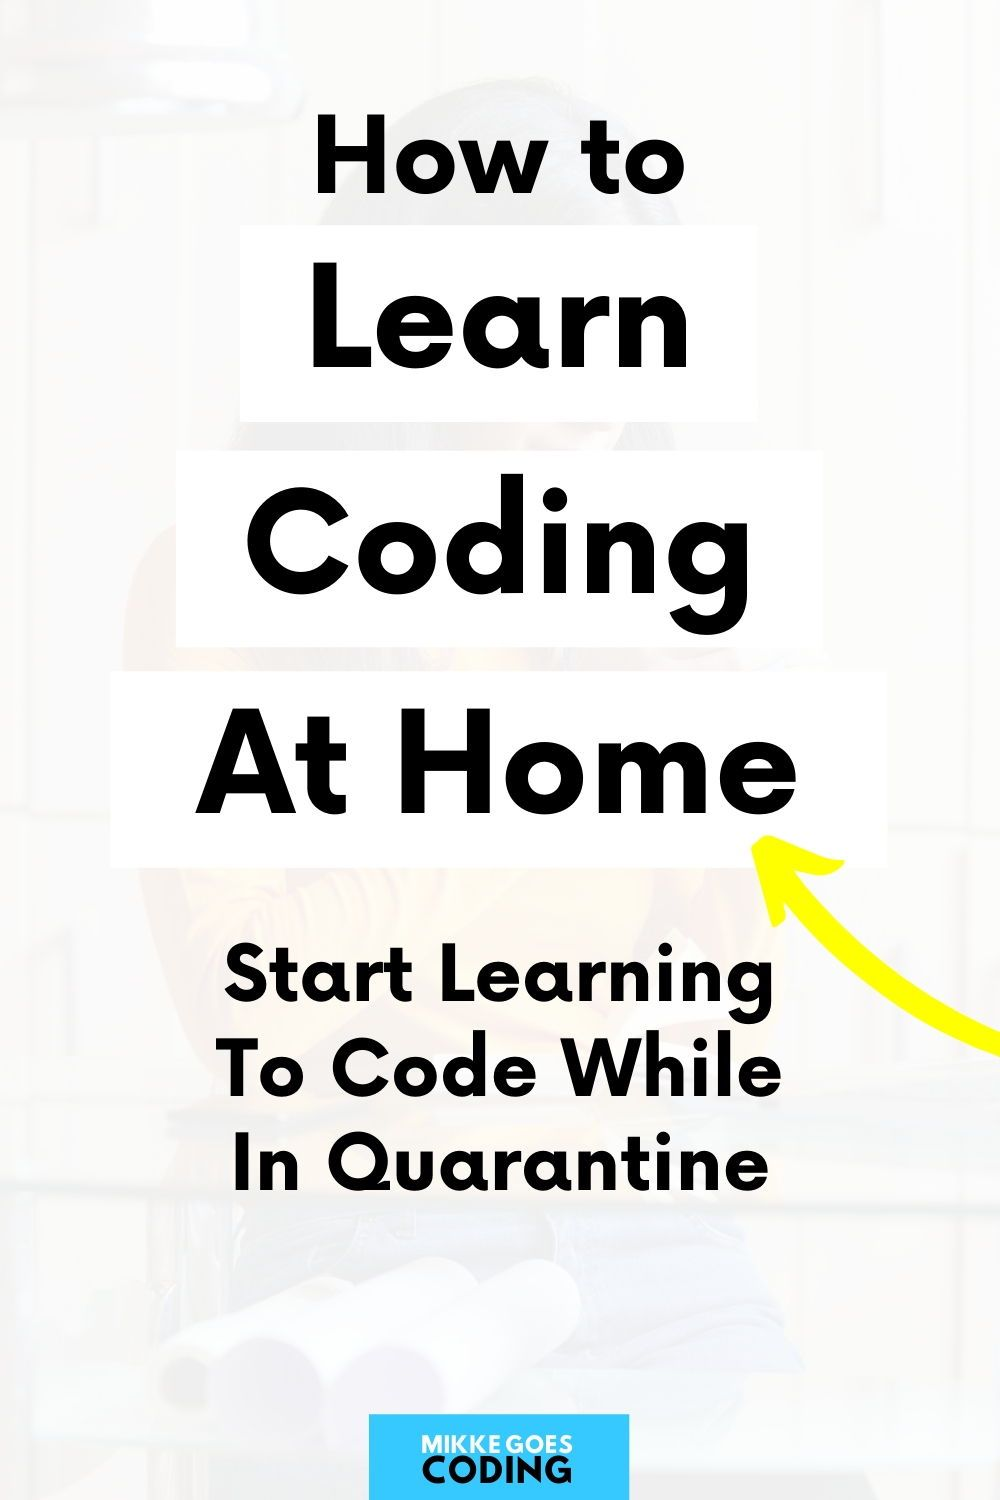 How to Start Learning Coding in 2020? 6 Time-Saving Tips